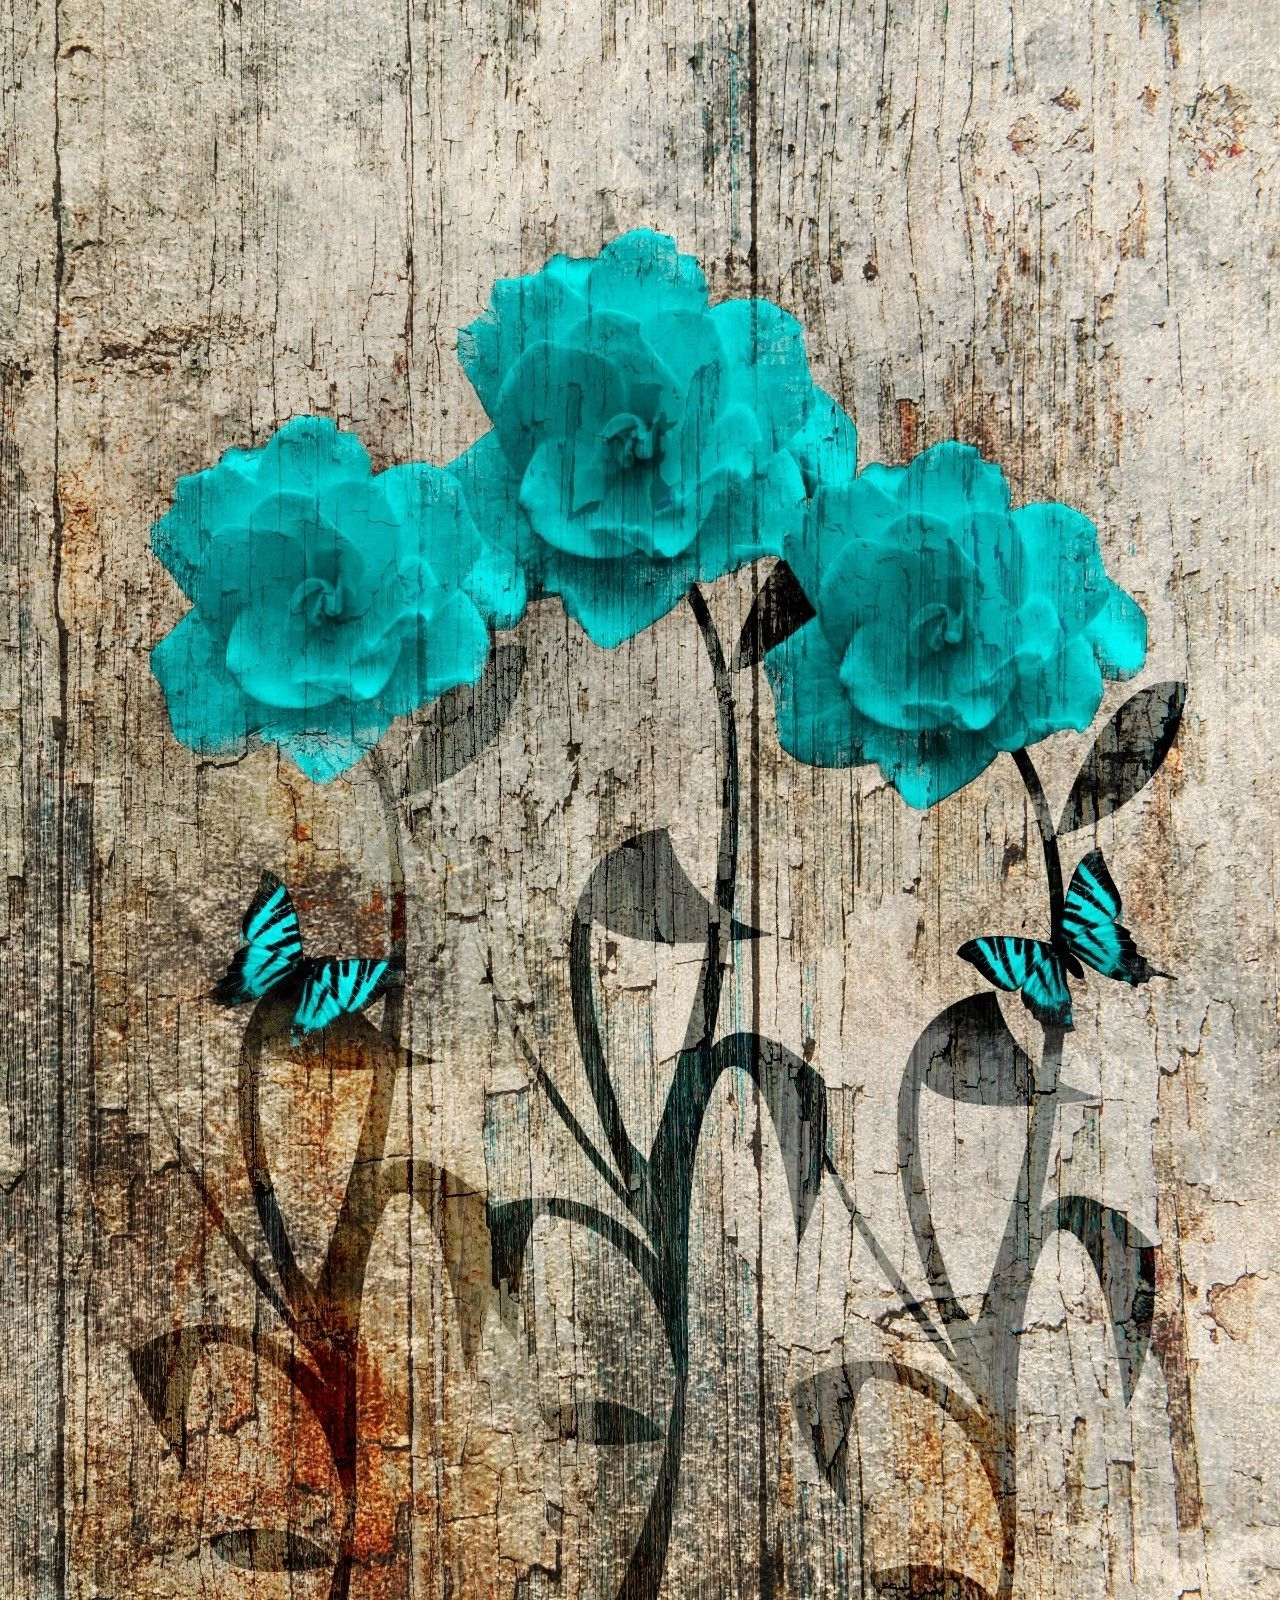 Teal And Brown Wall Art Throughout Most Recent Rustic Teal Brown Flowers Butterflies Country Home Decor Wall Art (View 13 of 15)